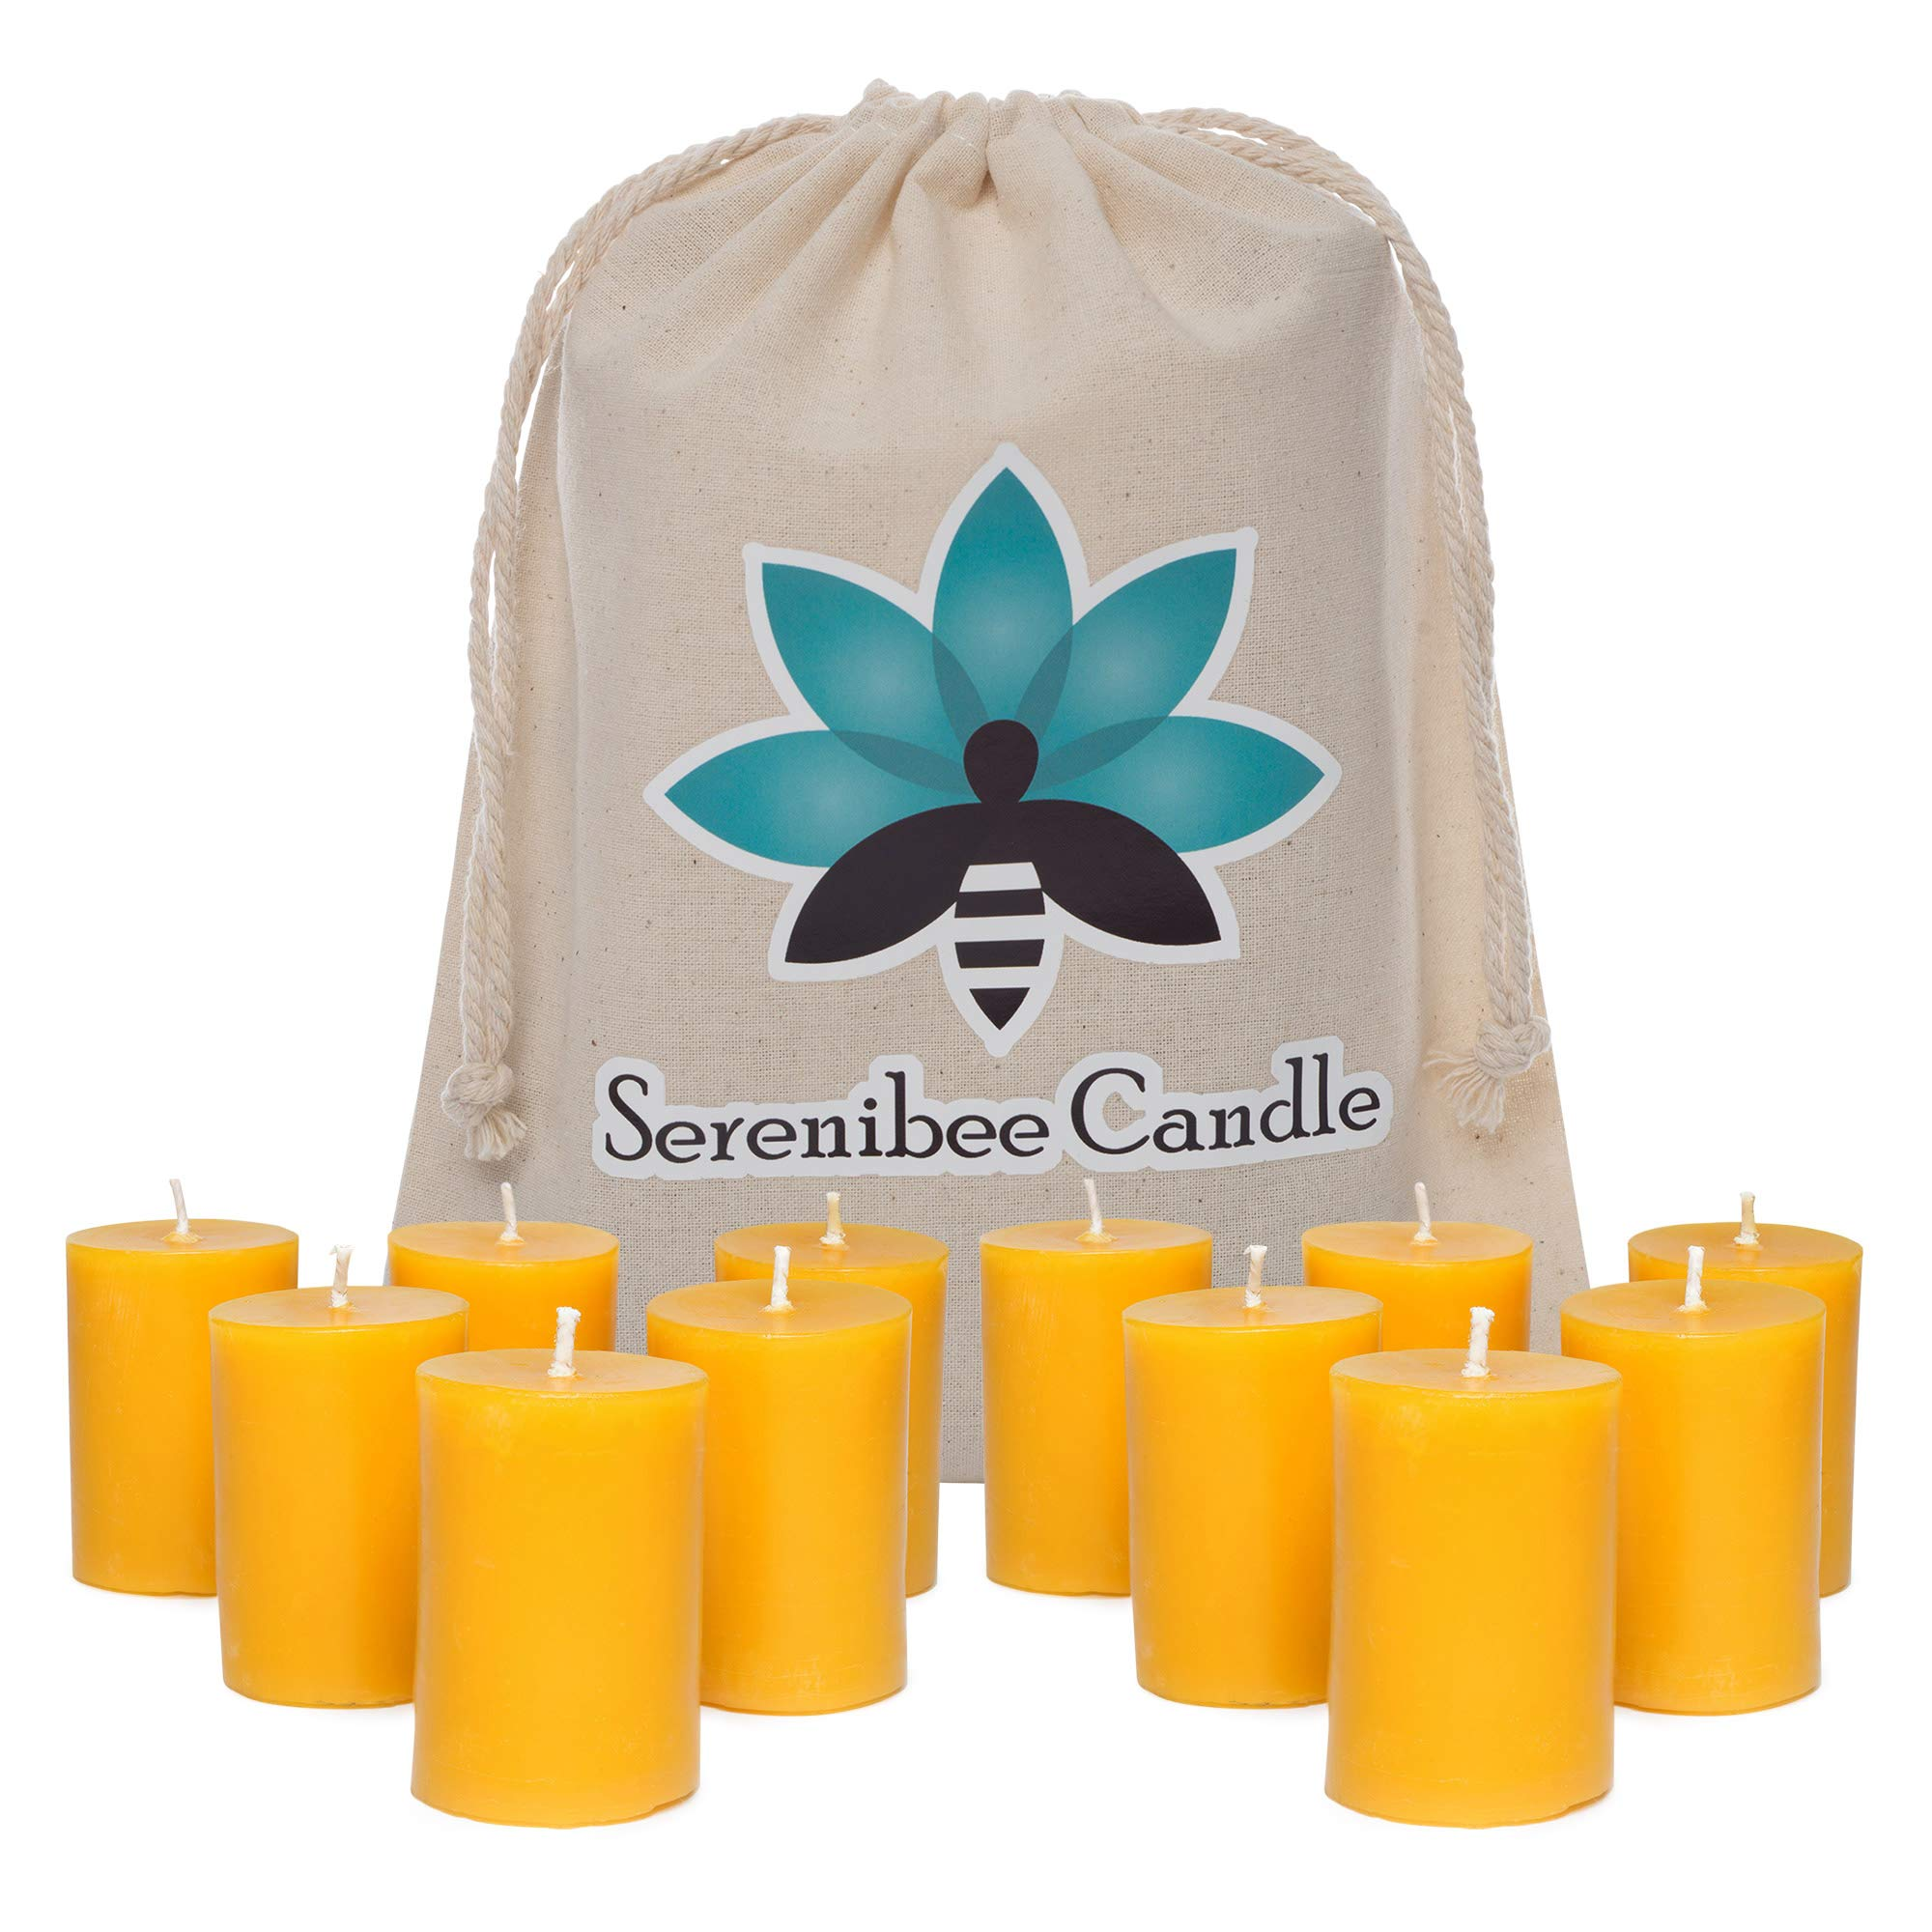 Serenibee Beeswax Votive Candles Set of 12 Pure Hand-Poured Eco Friendly Gift Set